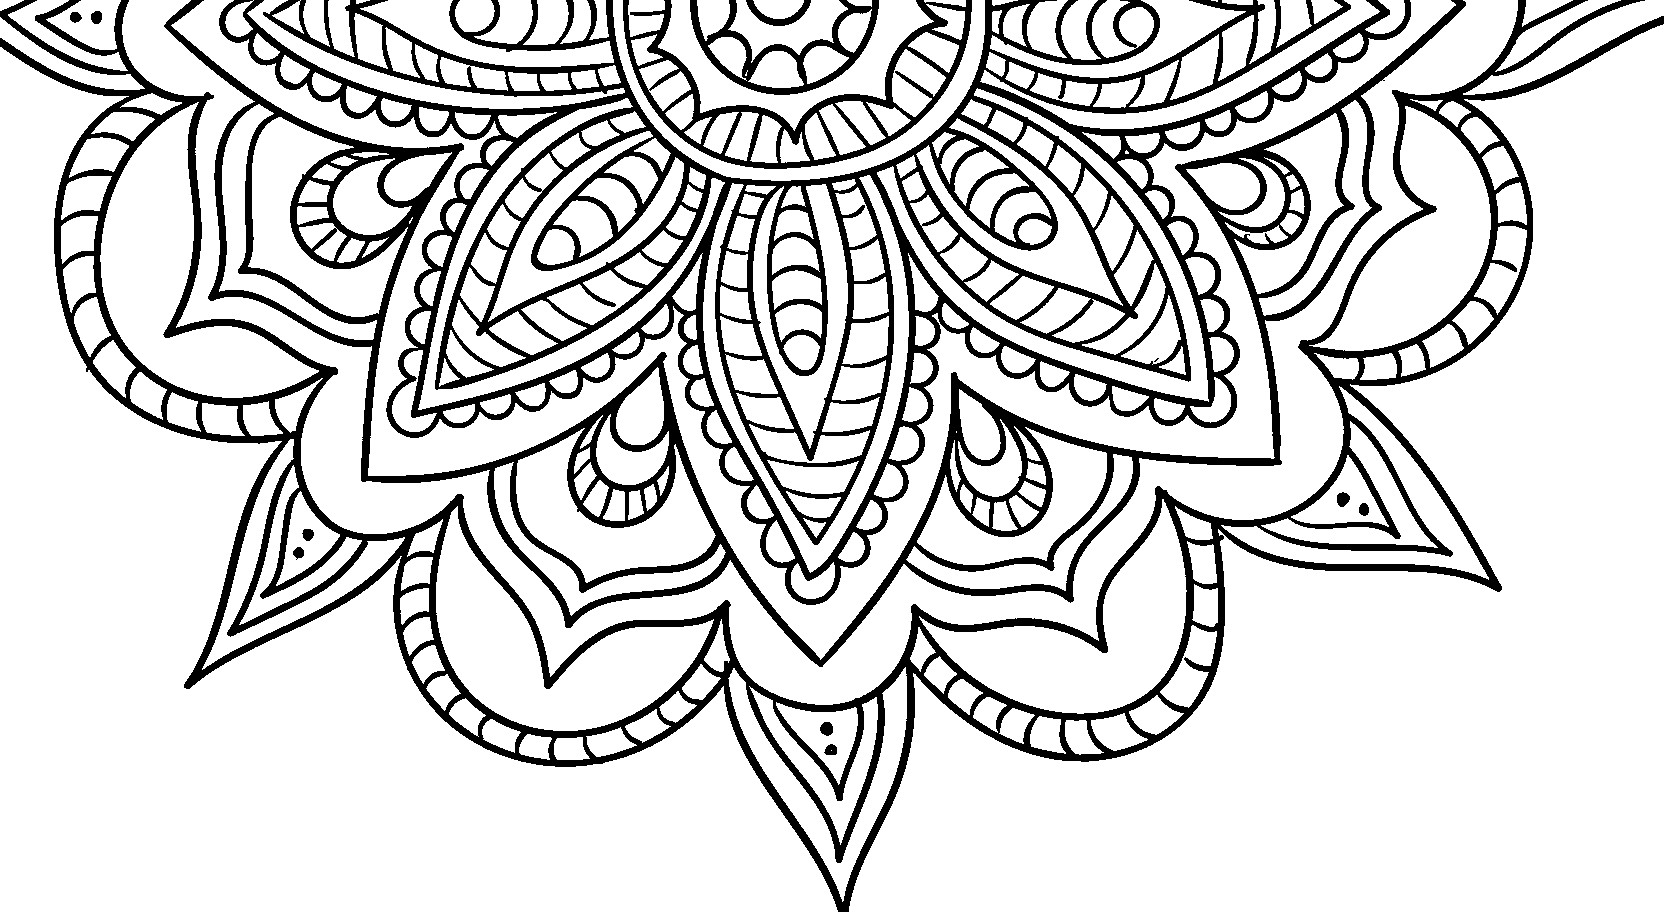 Best ideas about Easy Adult Coloring Books . Save or Pin Adult Coloring Pages Patterns Coloring Home Now.